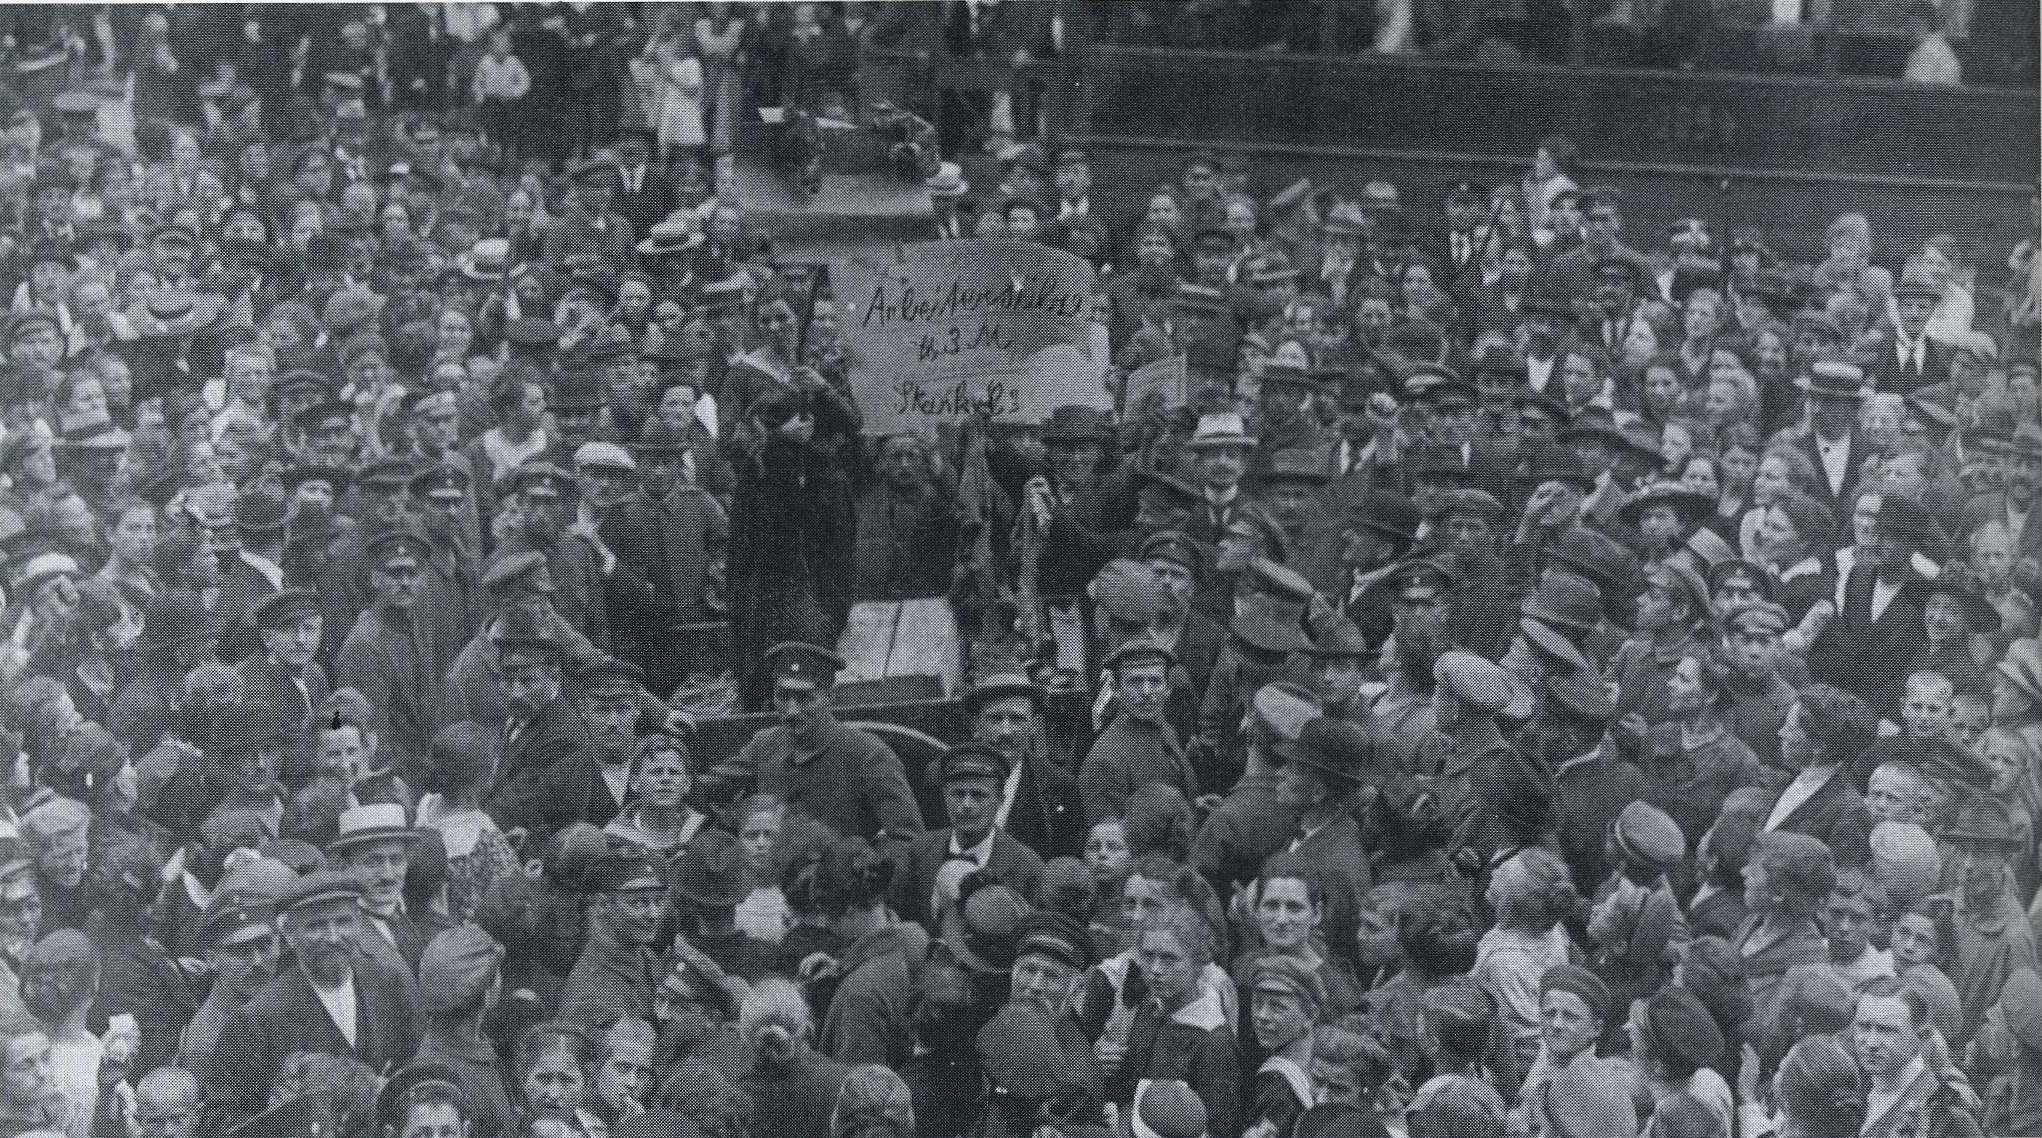 """Arbeitersülze – Pfund 3 Mark"". Demonstration in der Oberaltenallee, Juni 1919 (Foto: ETG Hamburg)"